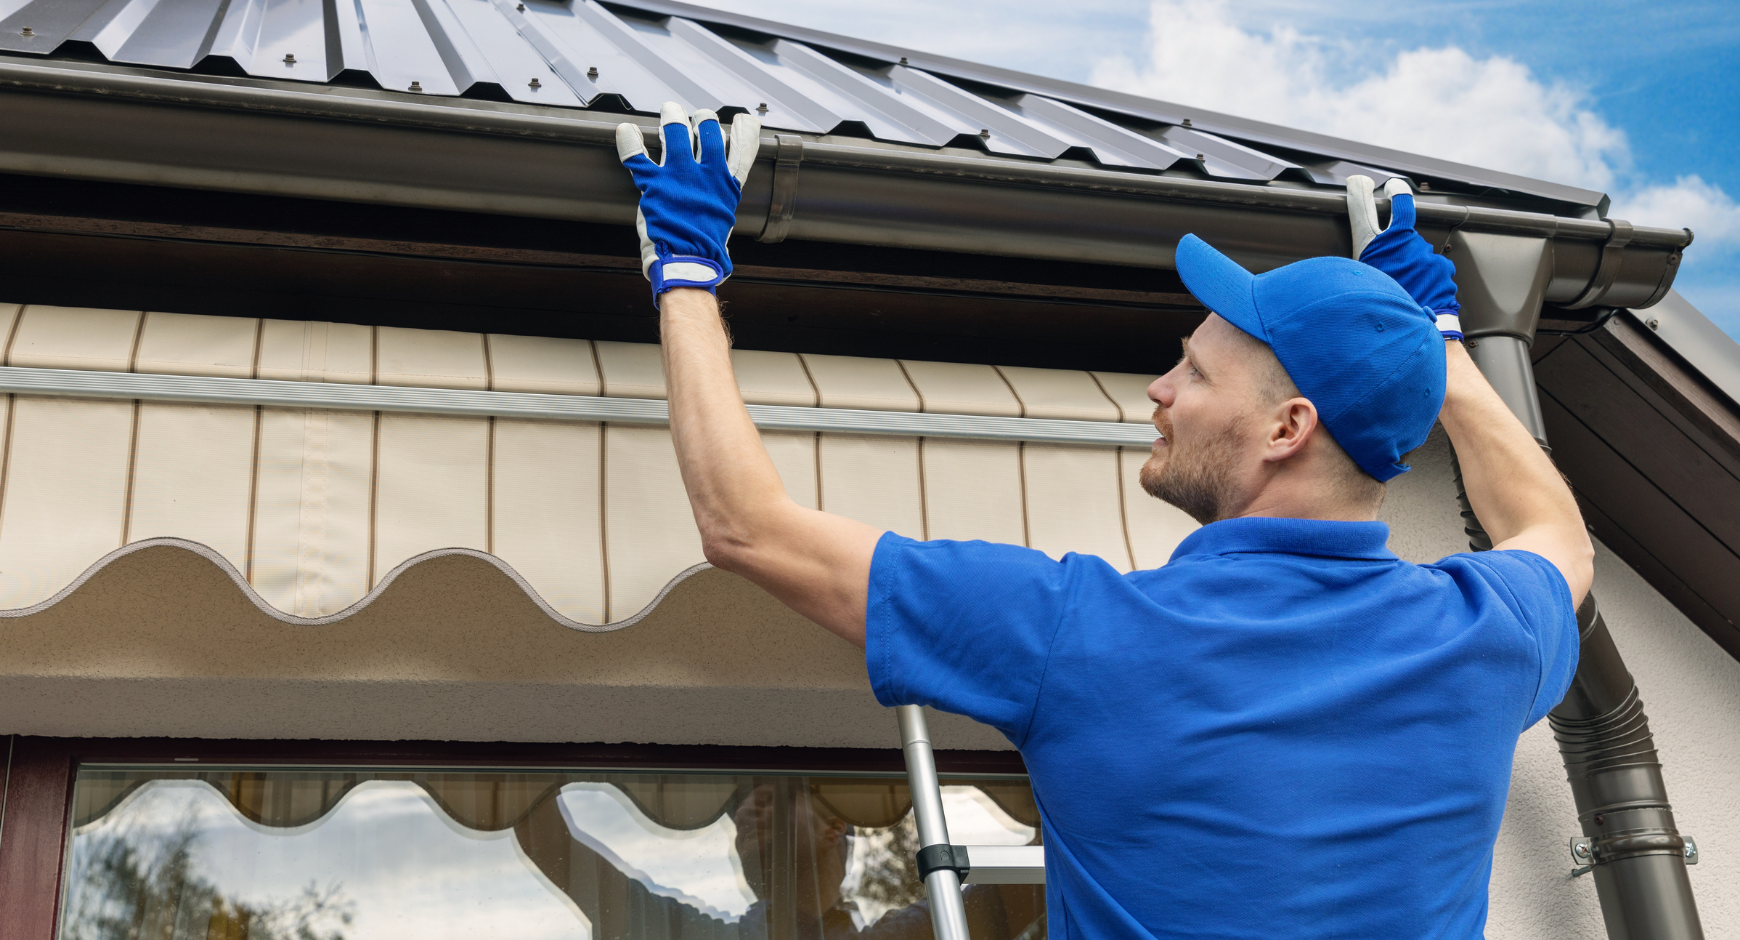 Image of a man installing gutters